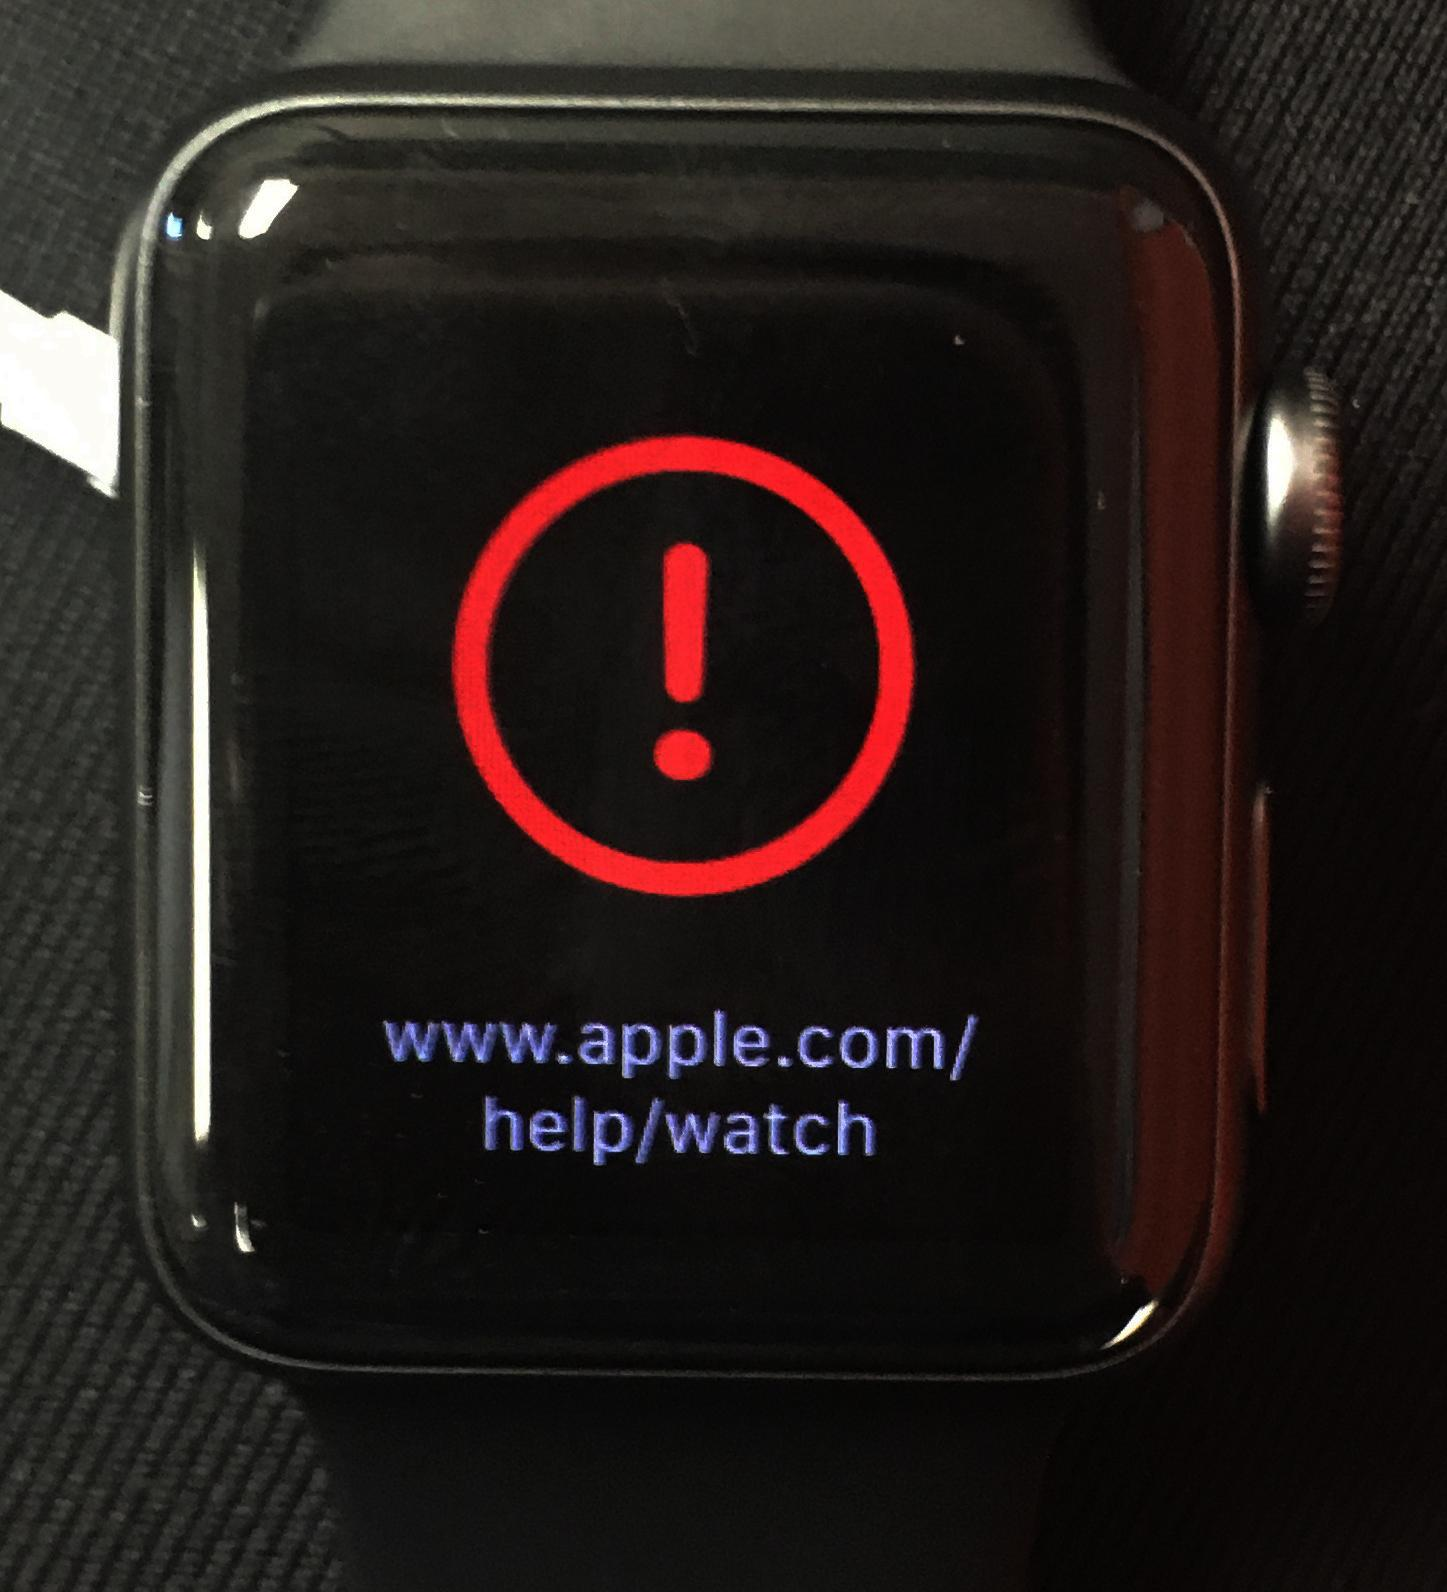 apple watch red exclamation mark